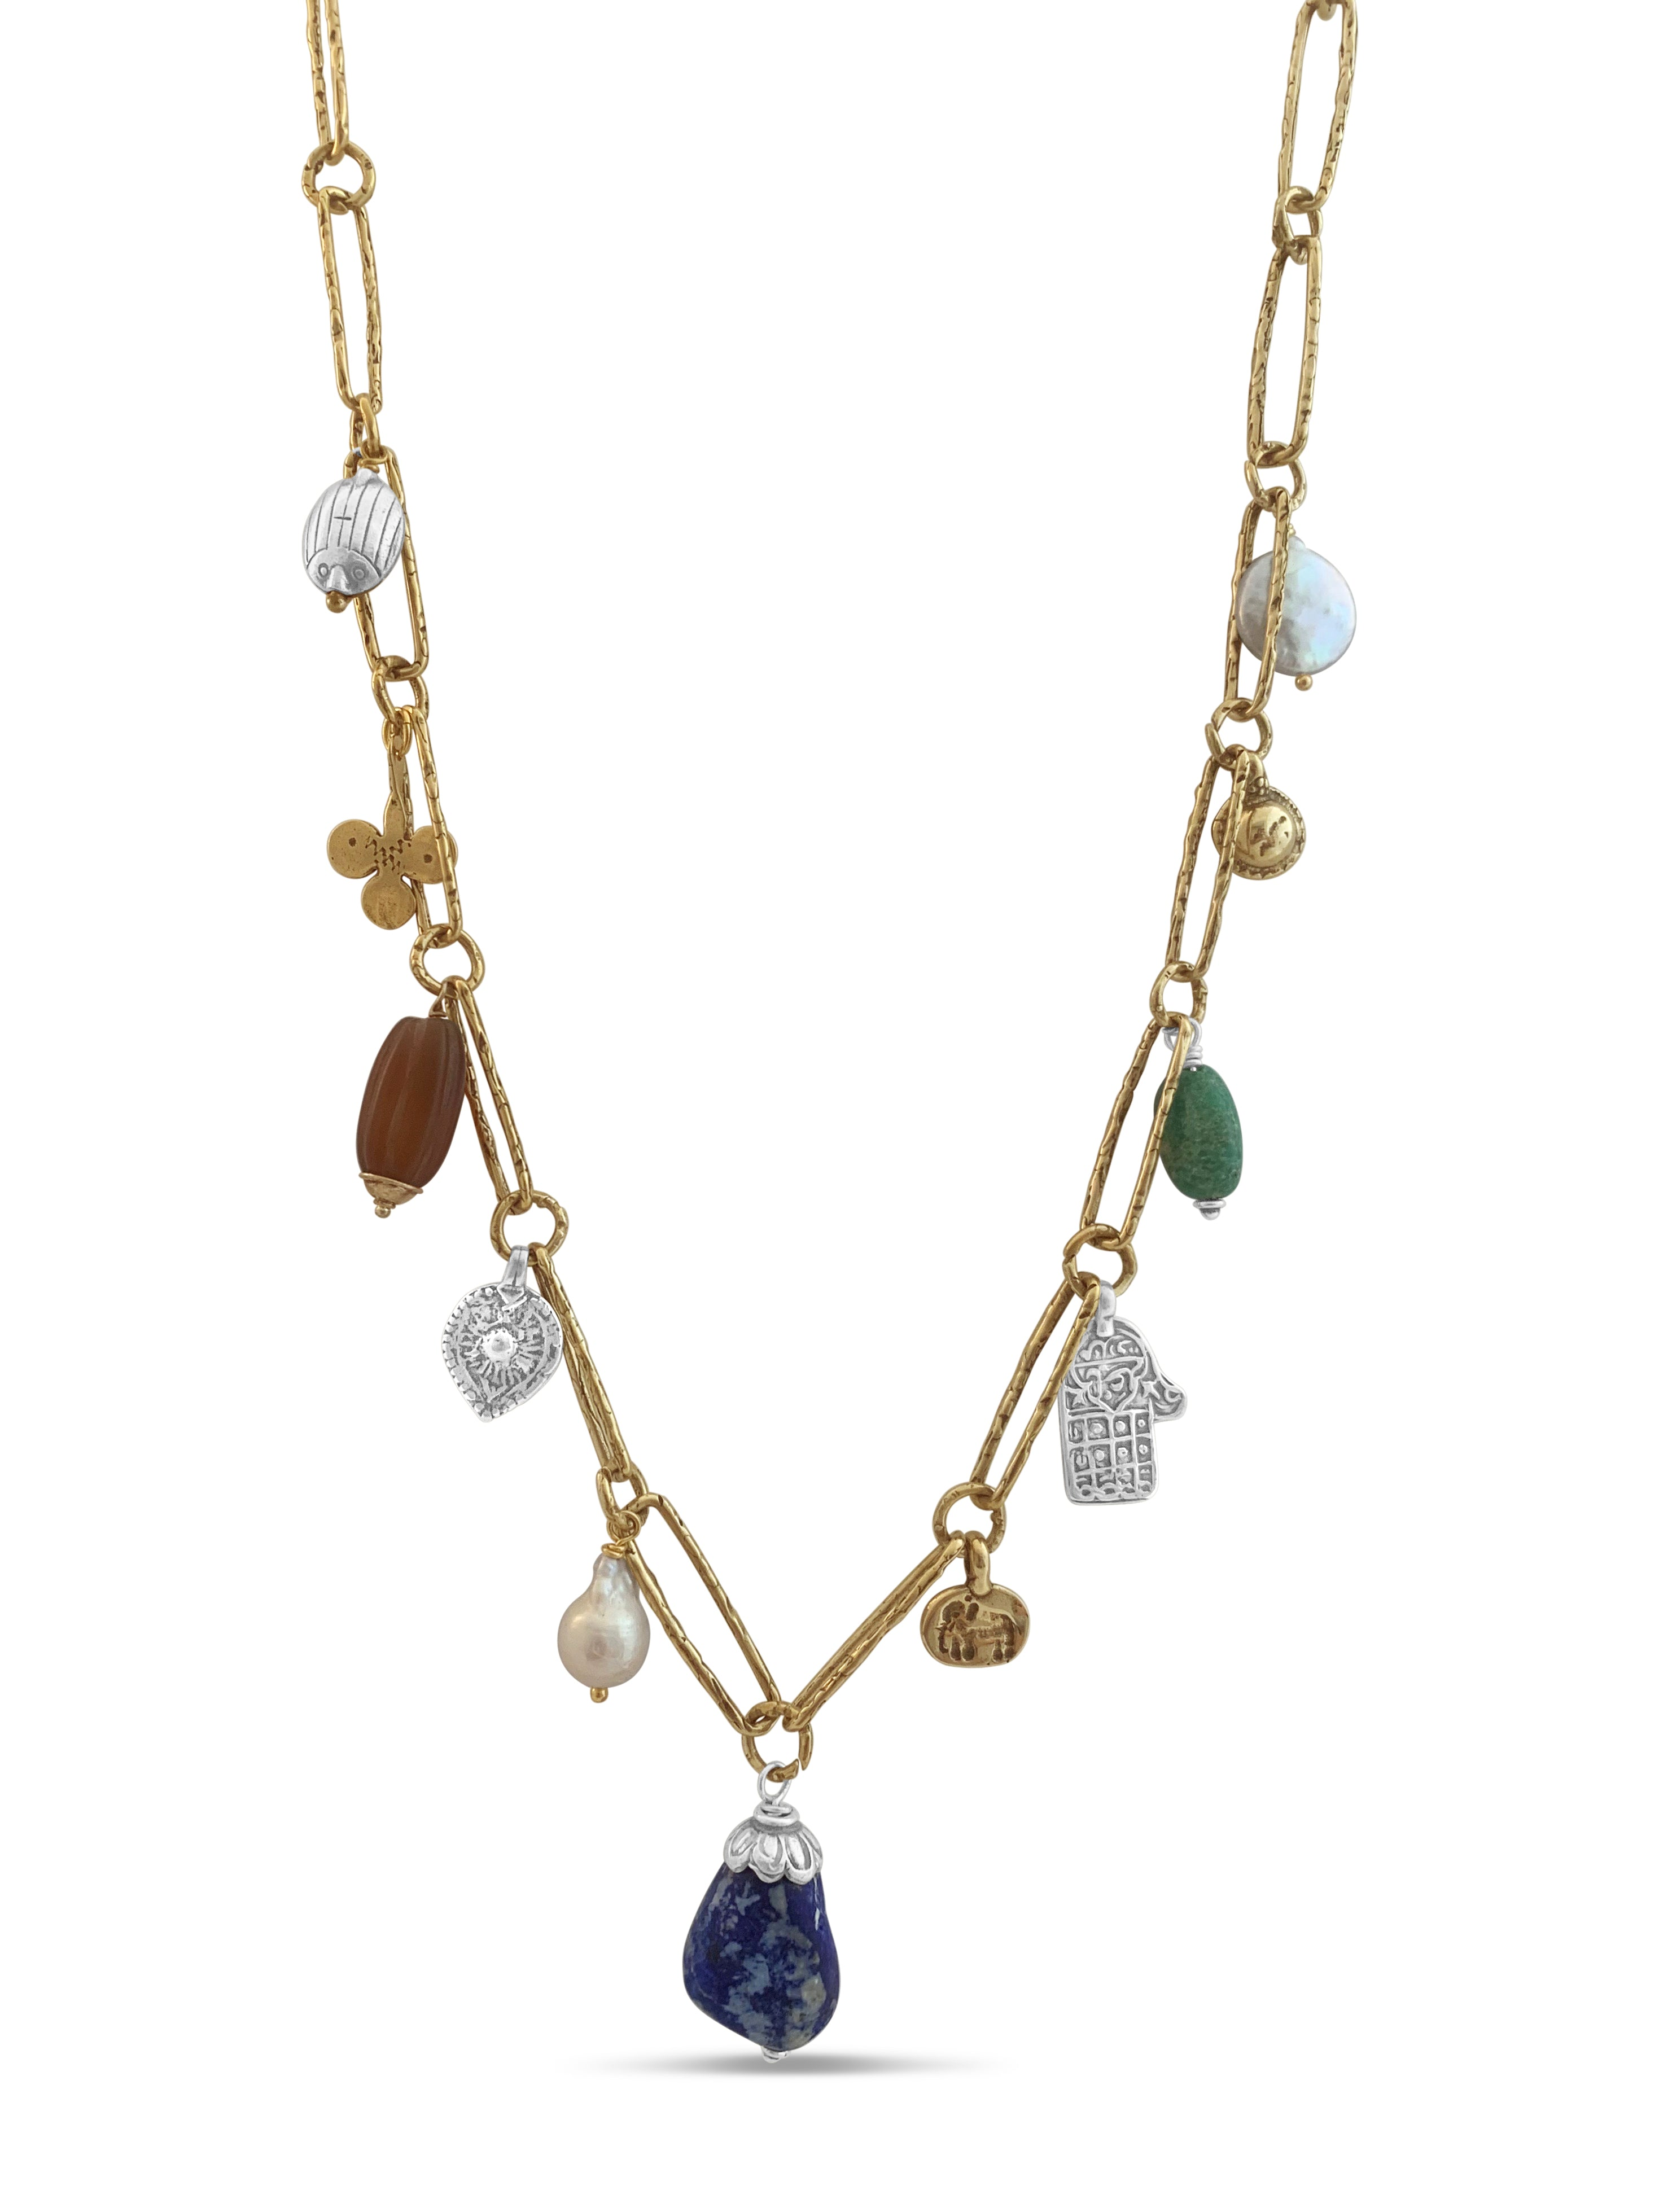 Lapis, Pearl and Carnelian Relic Necklace